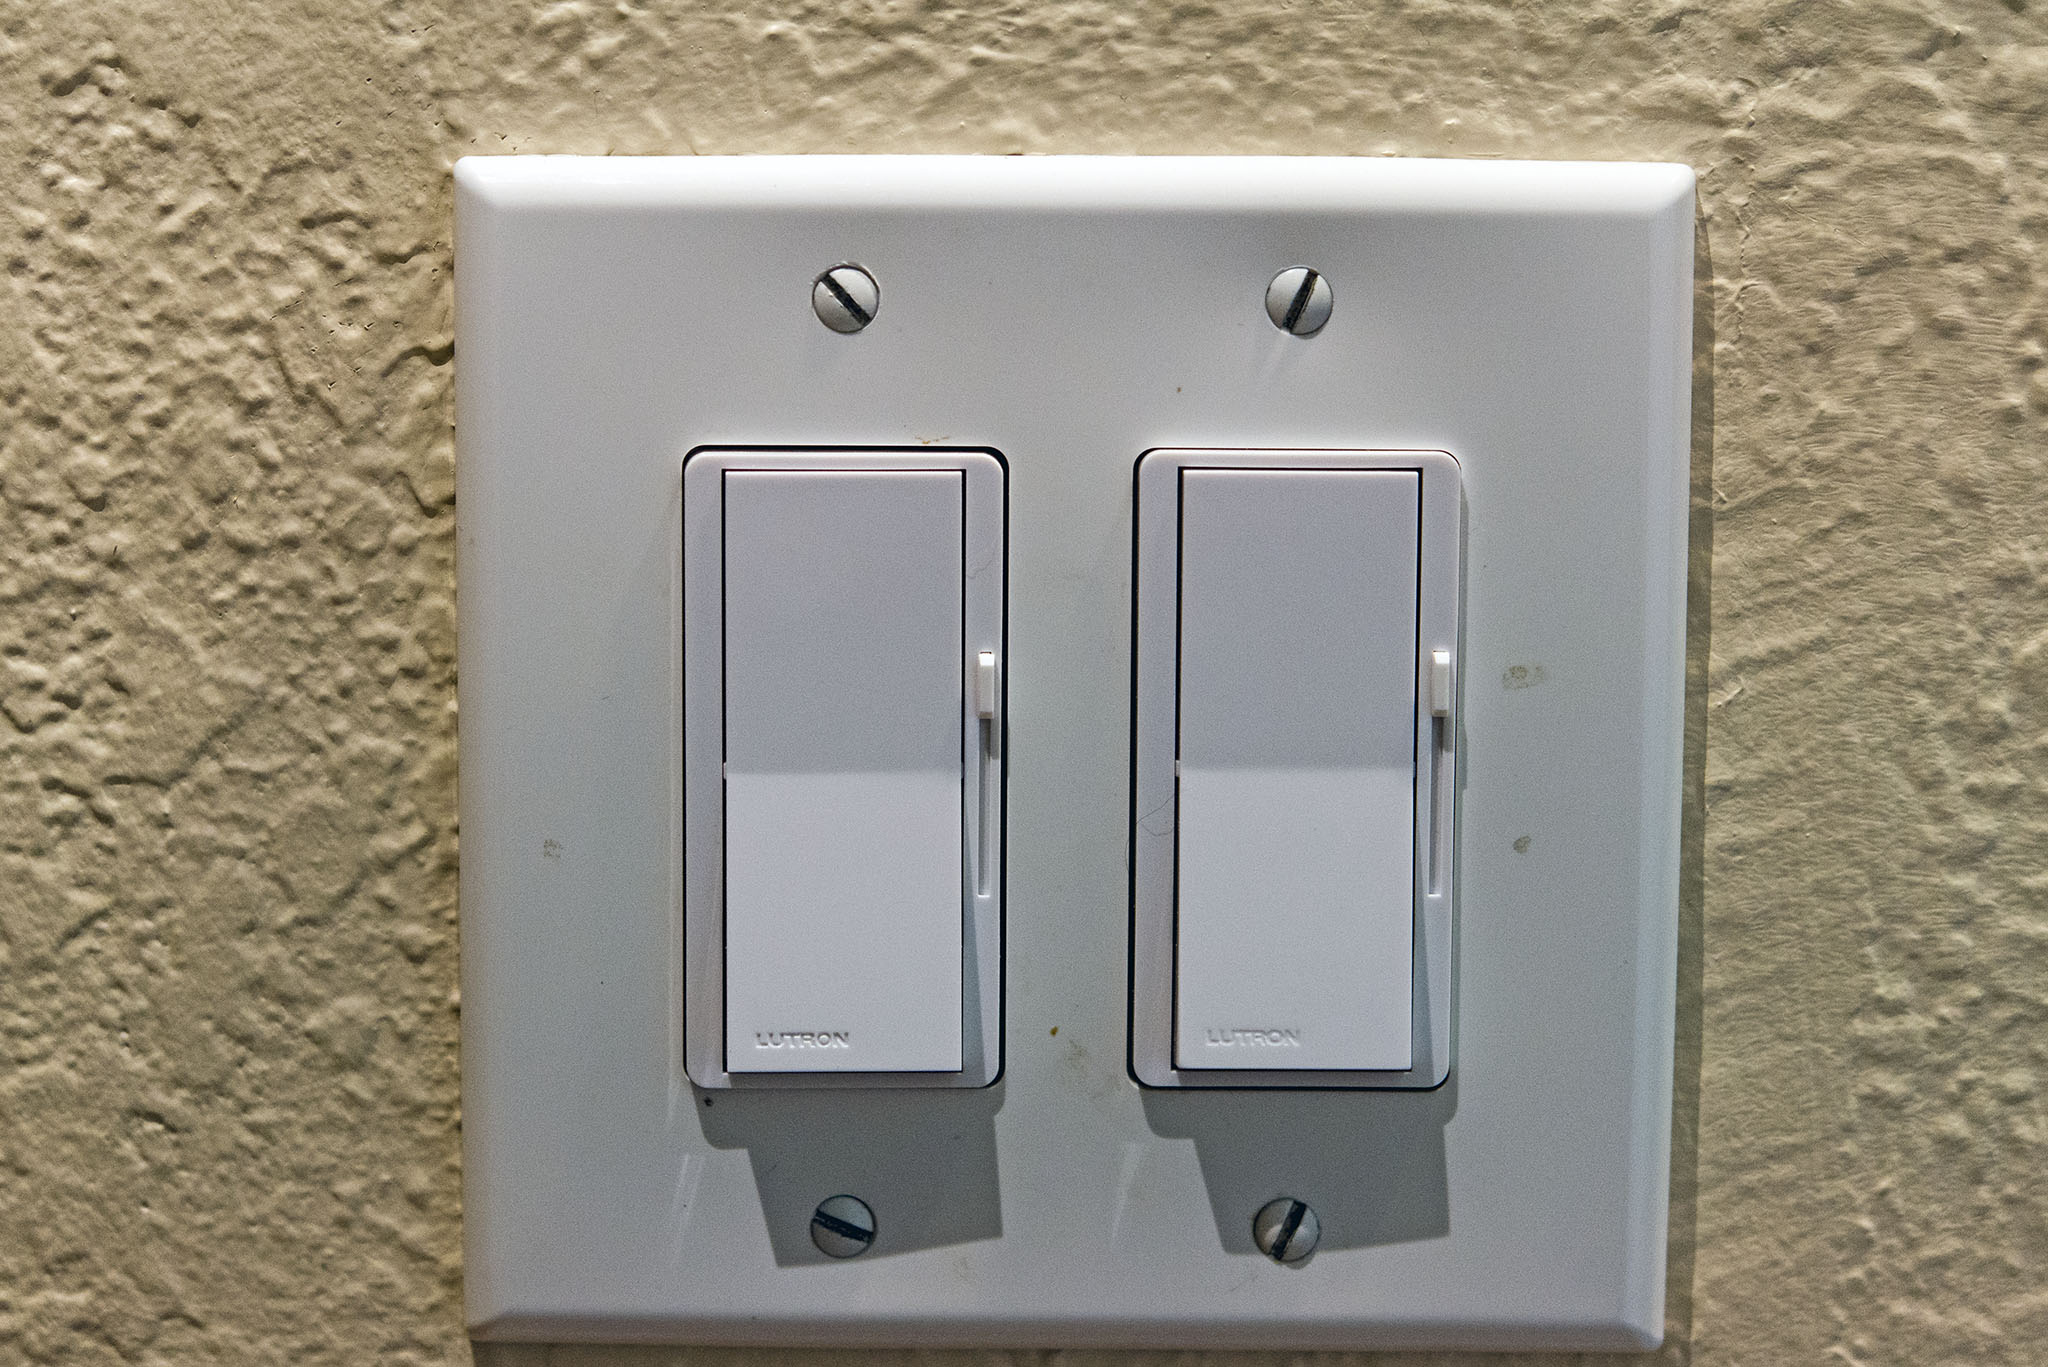 Lamp Switch Types How To Improve Your Home With Led Lighting Tested